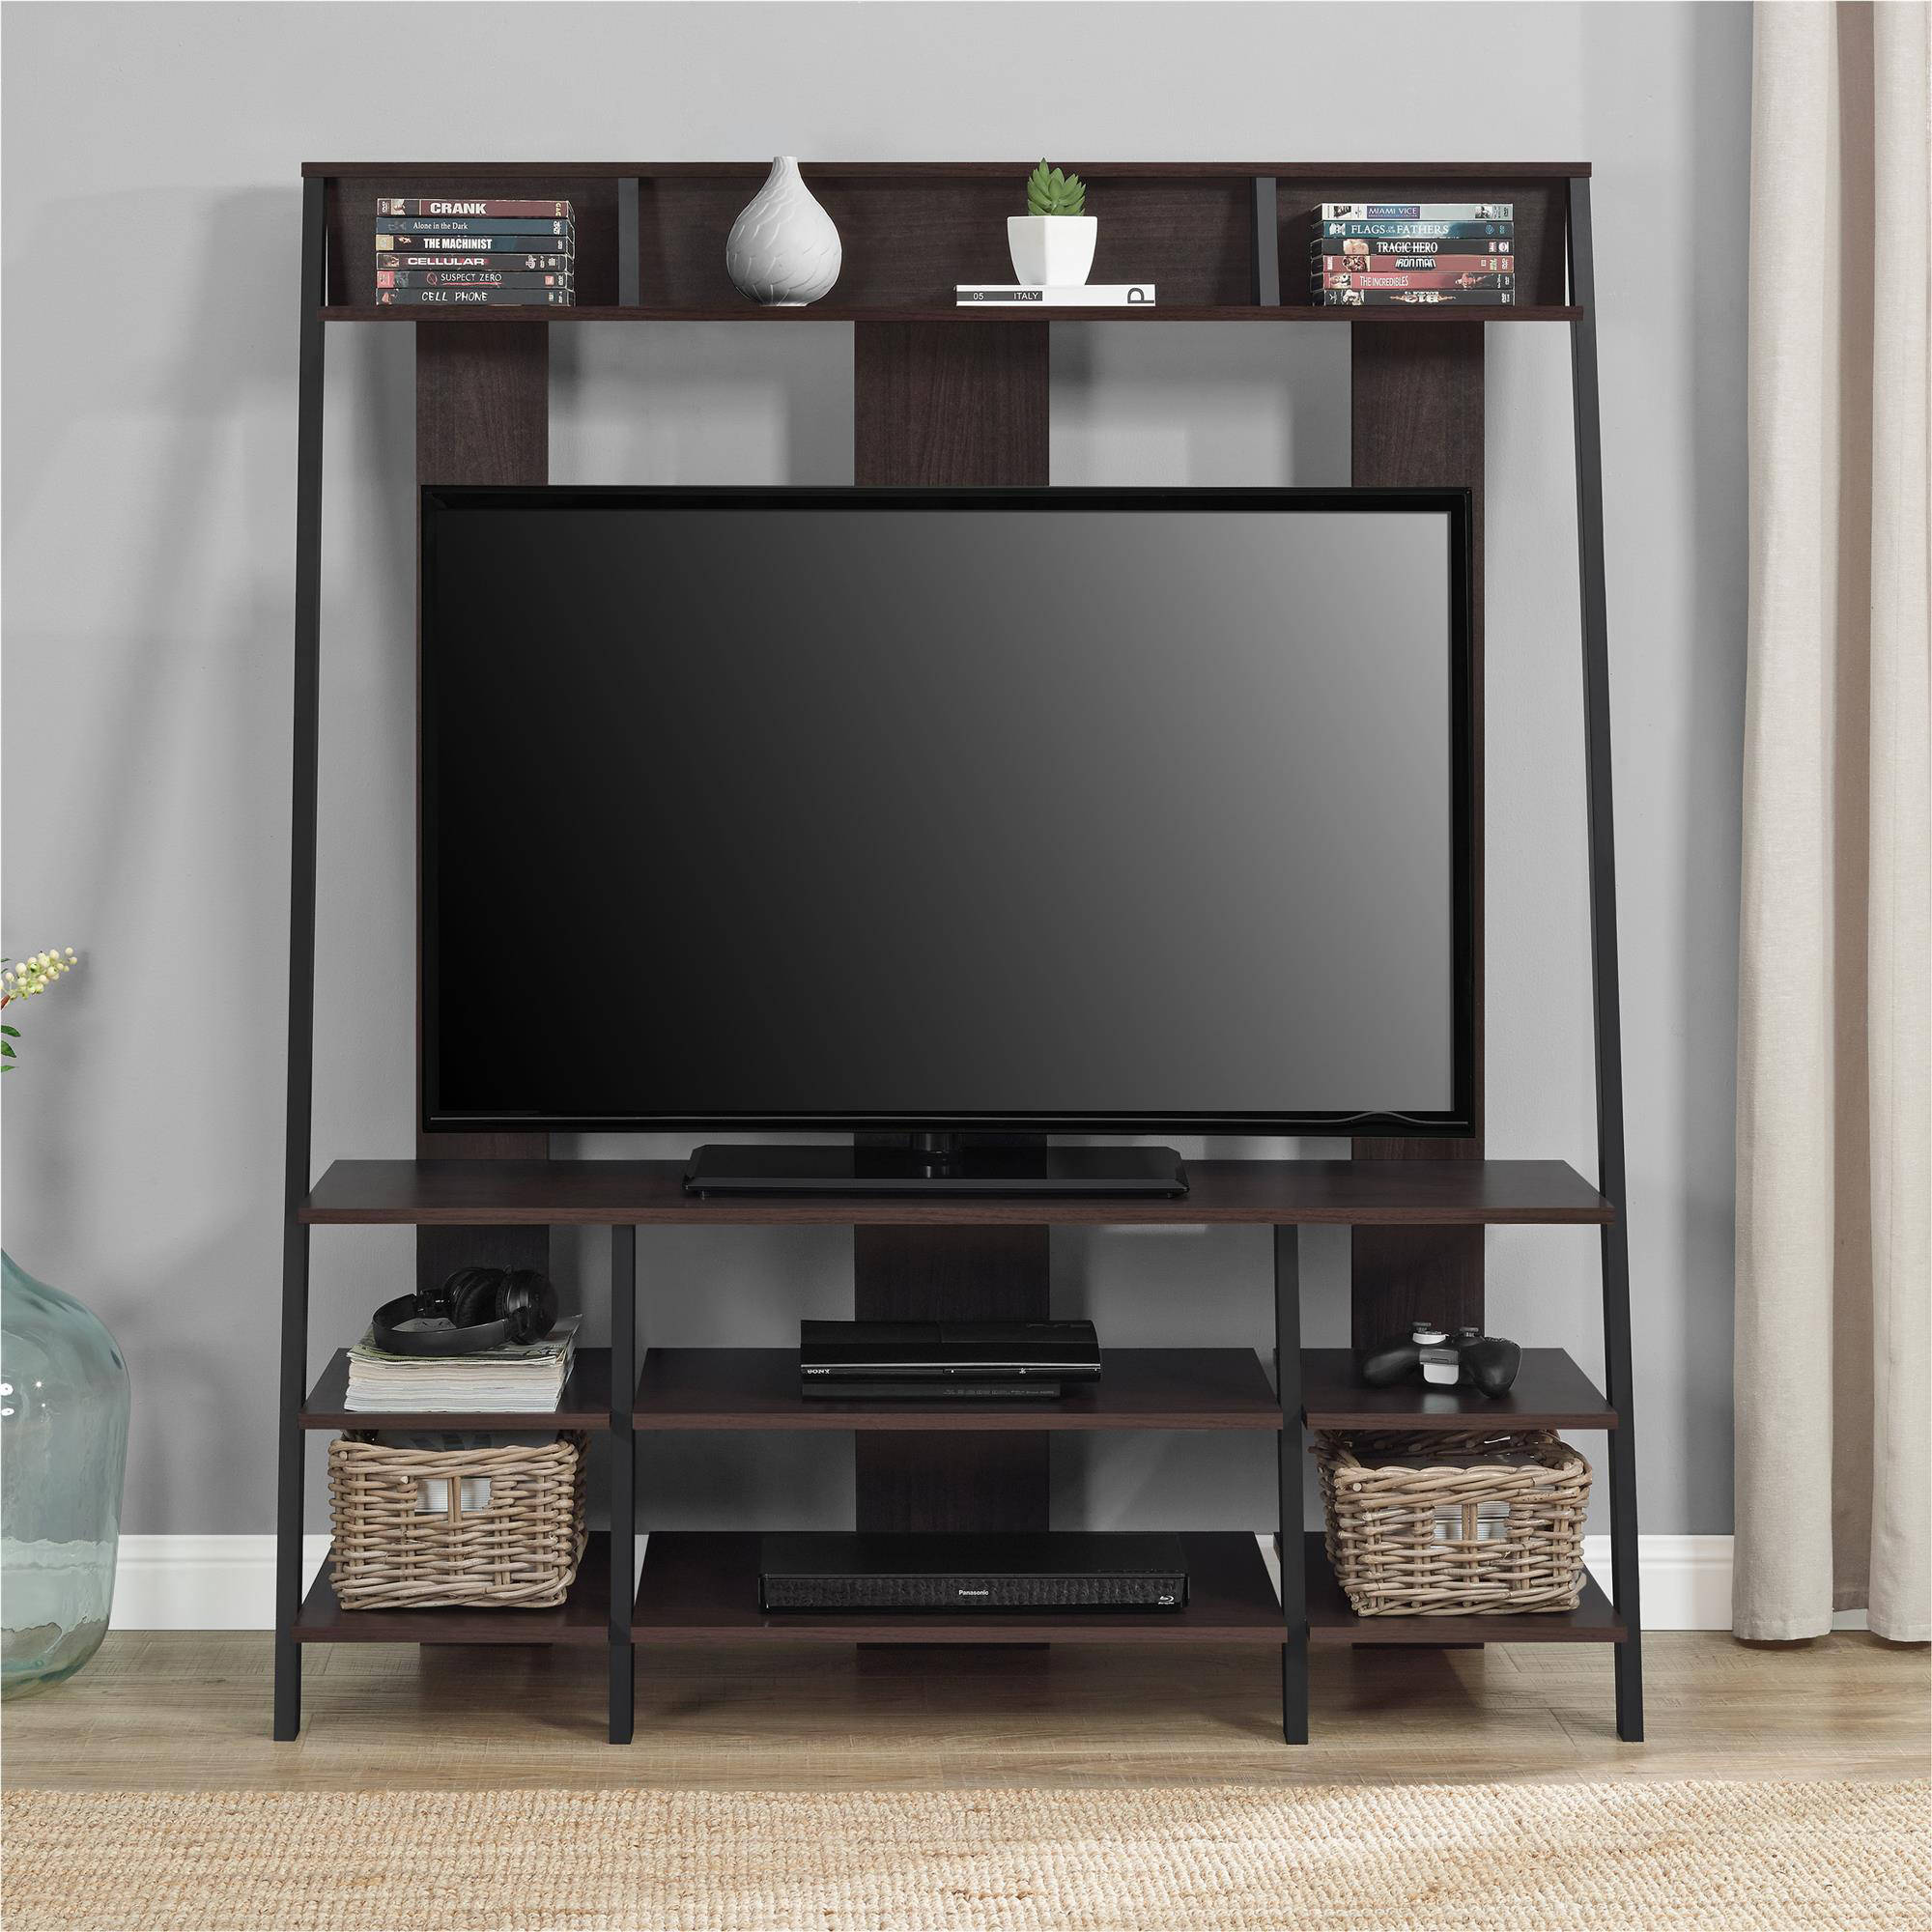 stands gallery com best ideas furniture room simple entertainment images tv design basement cupboard centers living bedroom ceiling with spaces and about home center for of